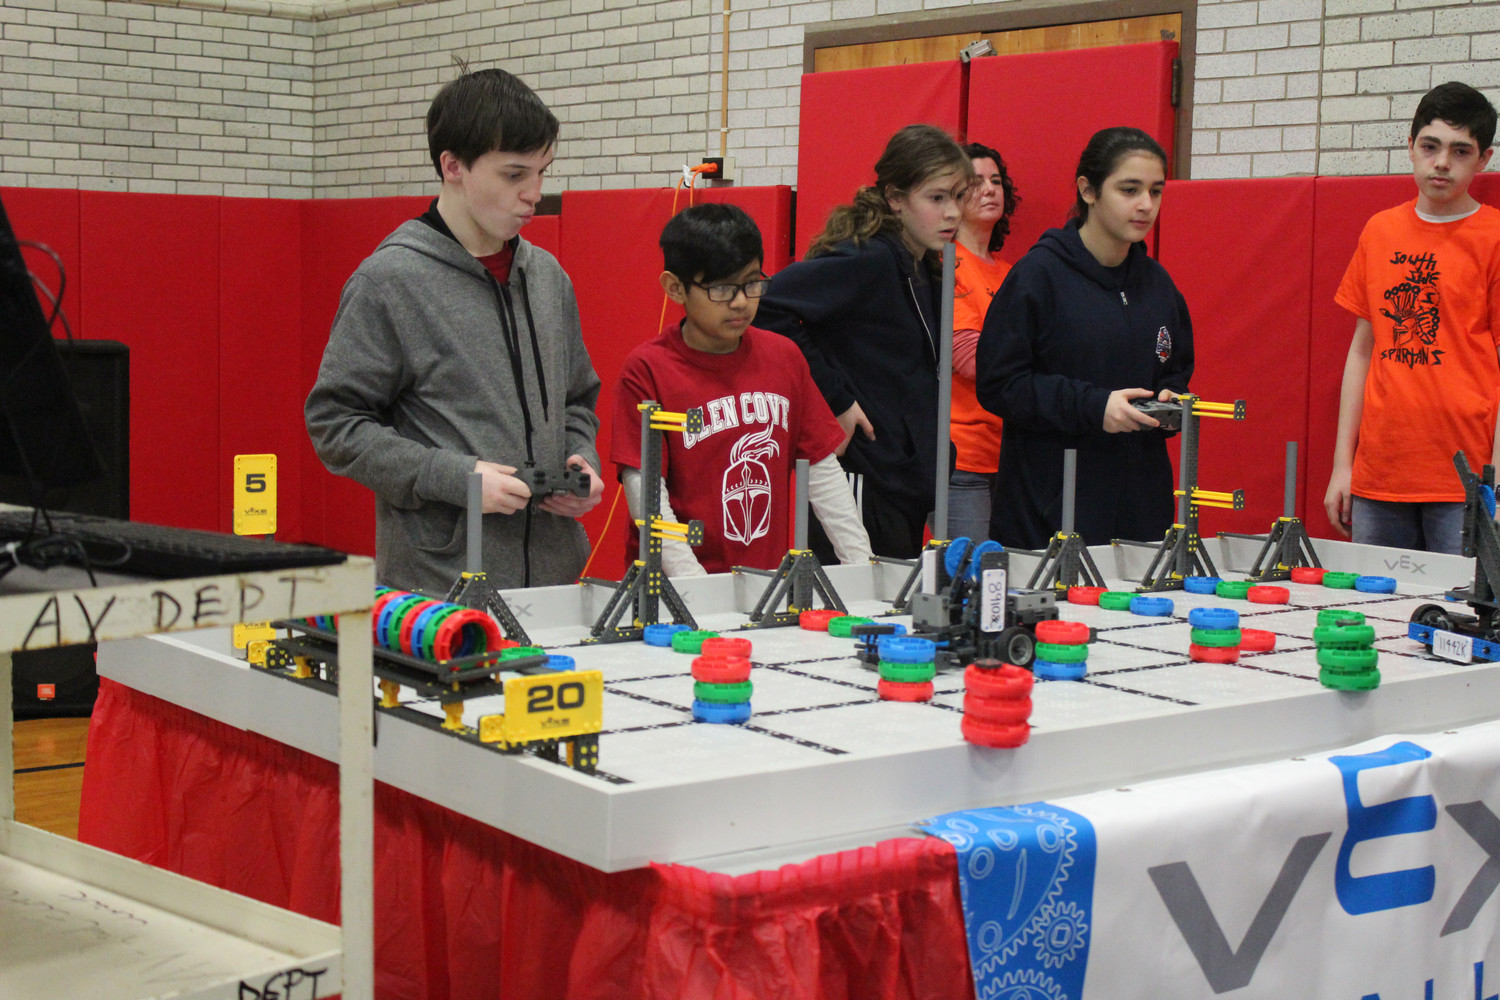 Glen Cove students Zachary Gotterbarn, left, and James Lopez competed in the early rounds.